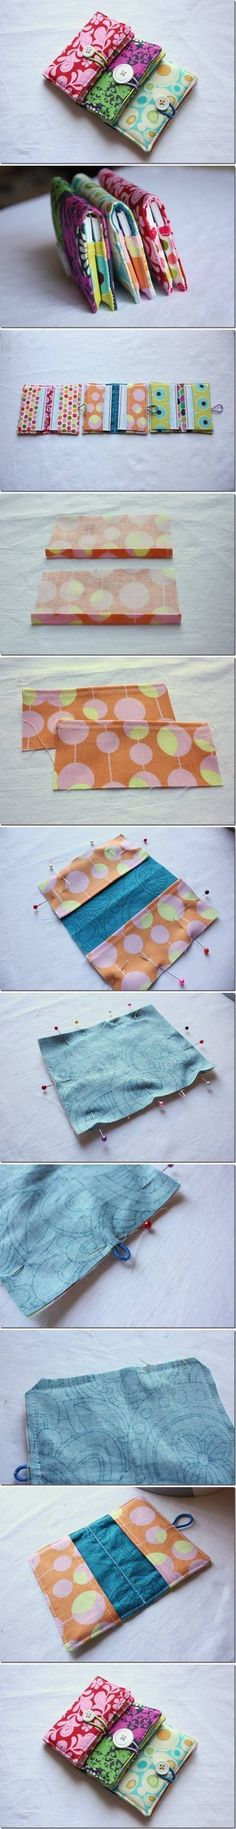 DIY Sew Business Card Holder | I often see this and forget to pin it so todays the day! could be nice little gifts or stocking stuffers too!